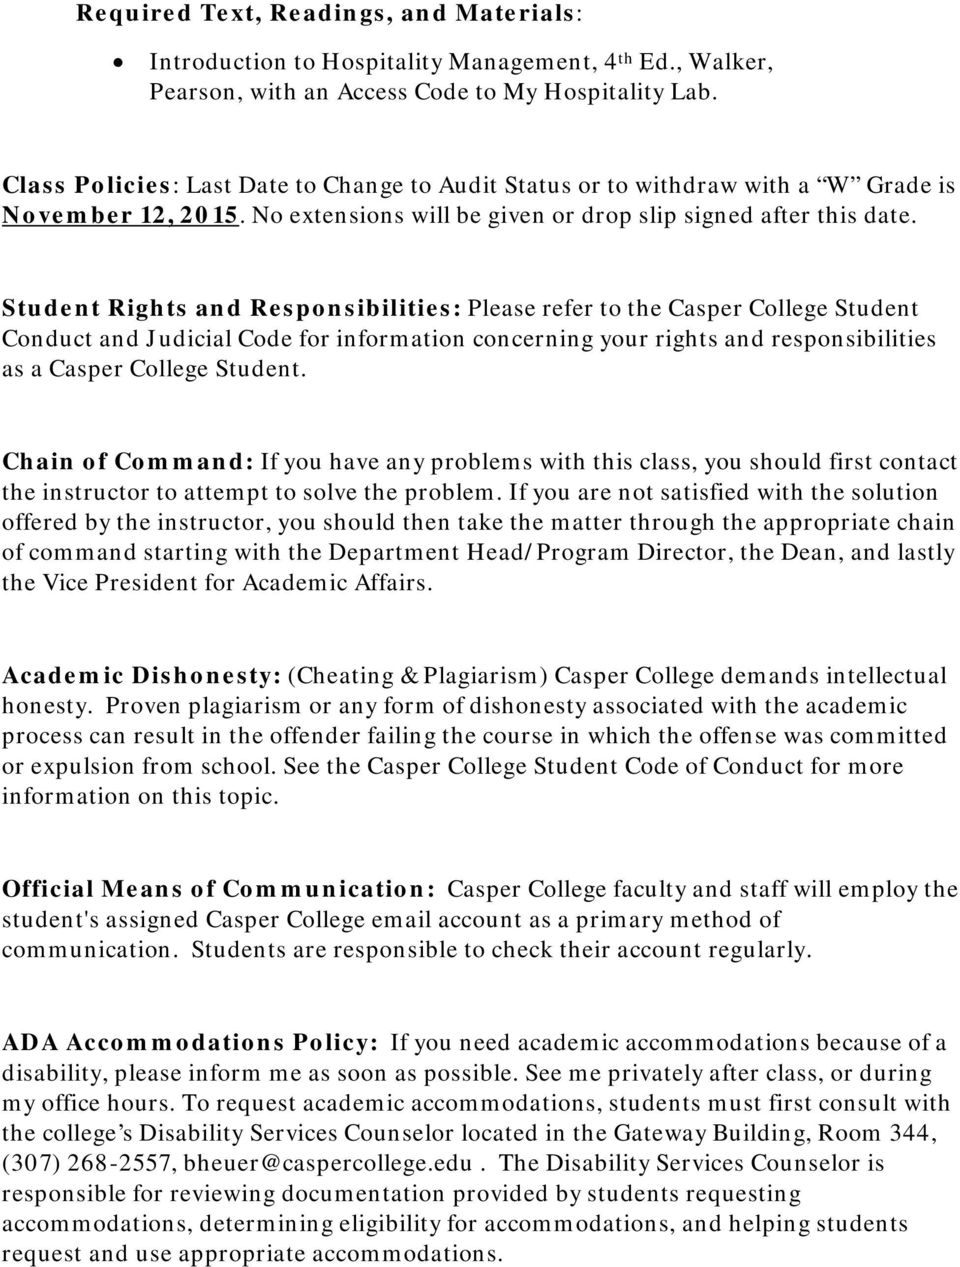 Student Rights and Responsibilities: Please refer to the Casper College Student Conduct and Judicial Code for information concerning your rights and responsibilities as a Casper College Student.